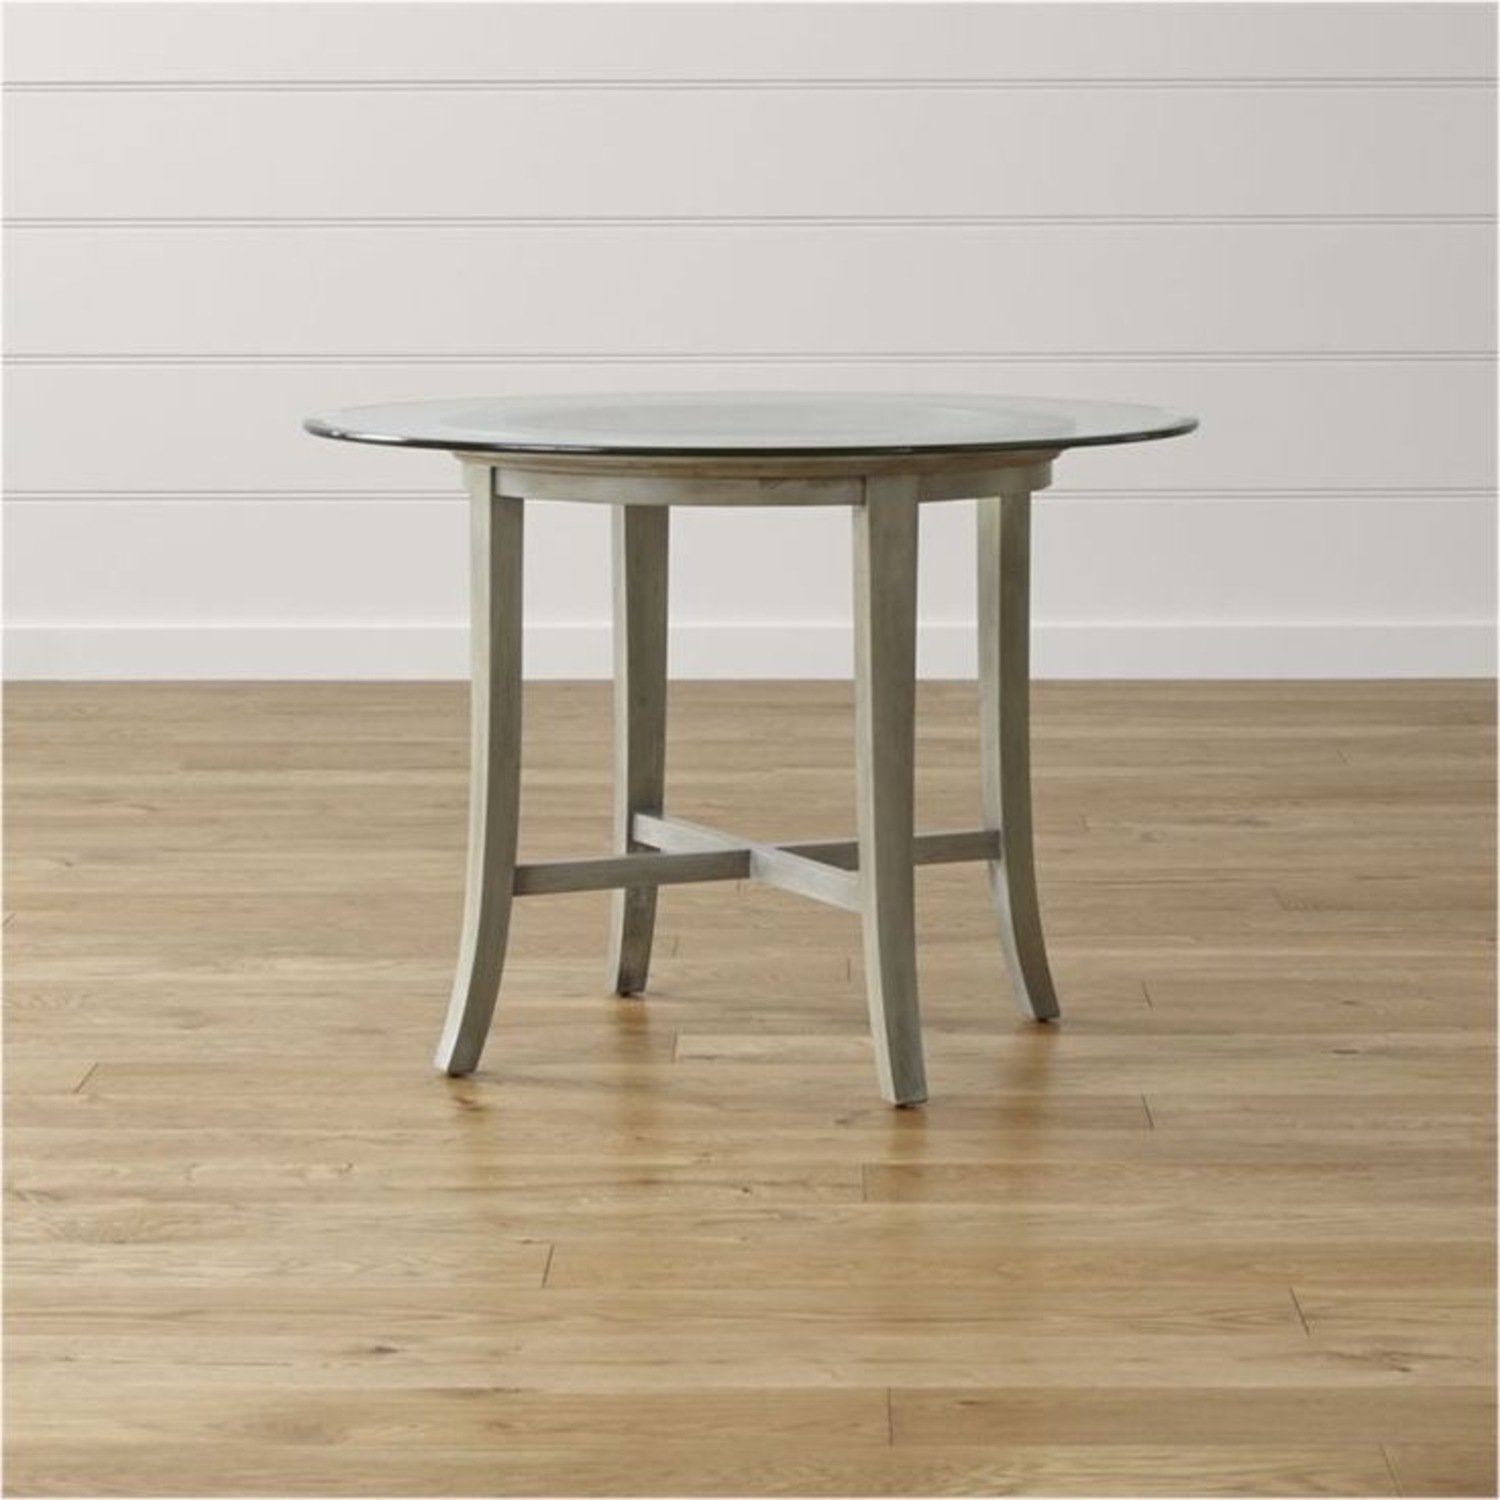 Crate and Barrel Round Glass Dining Table - image-6